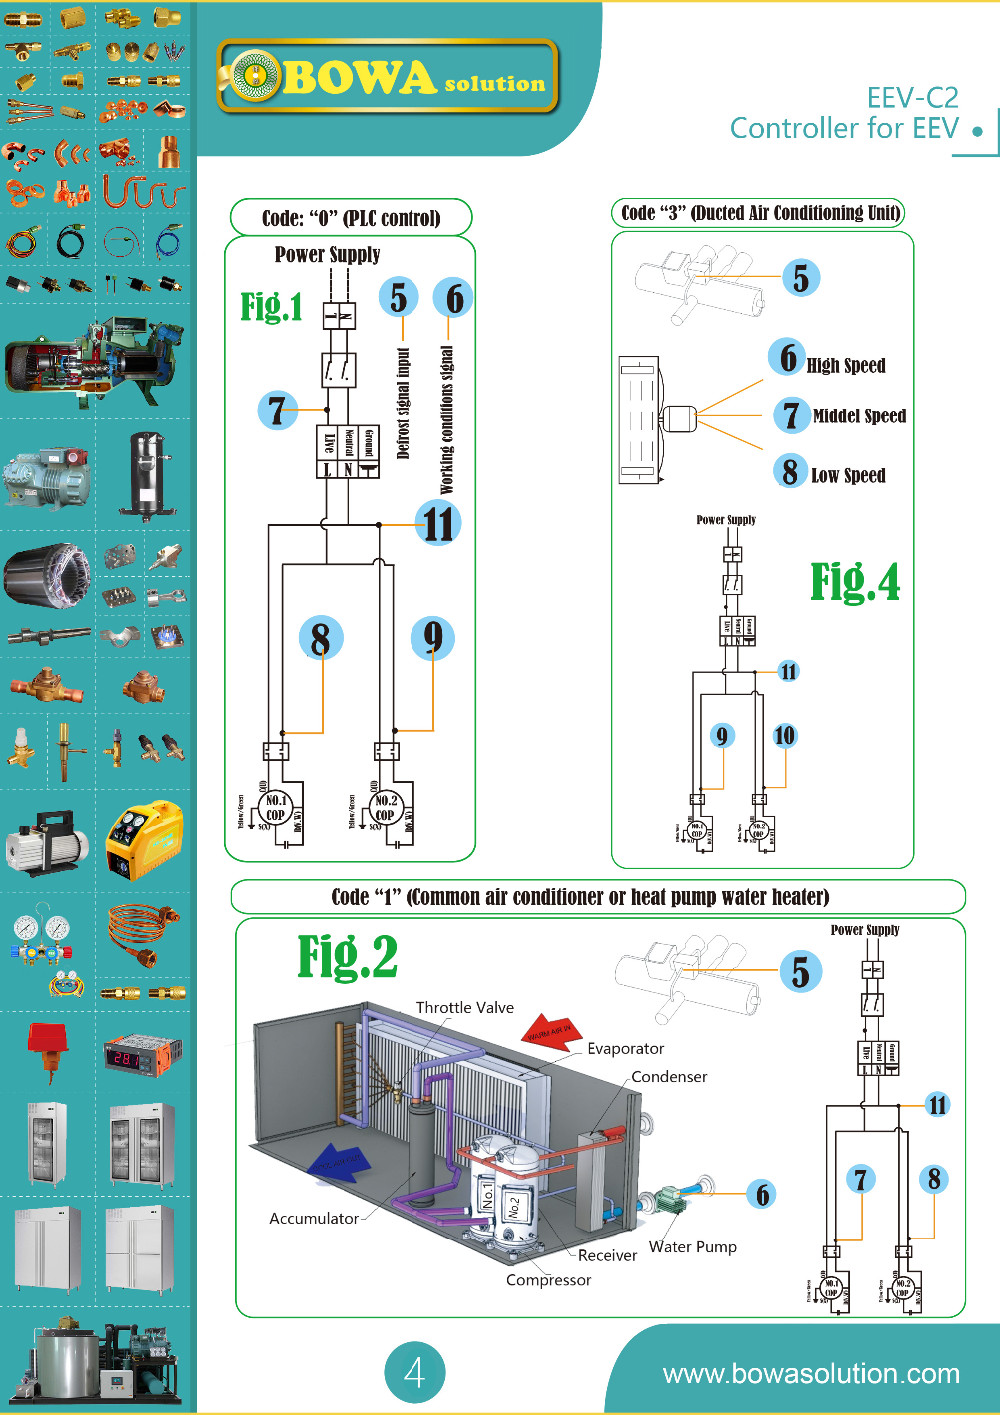 General and independent EEV controller for twin compressor unit or 3-in-1 heat pump or dual temperature refrigeration equipments